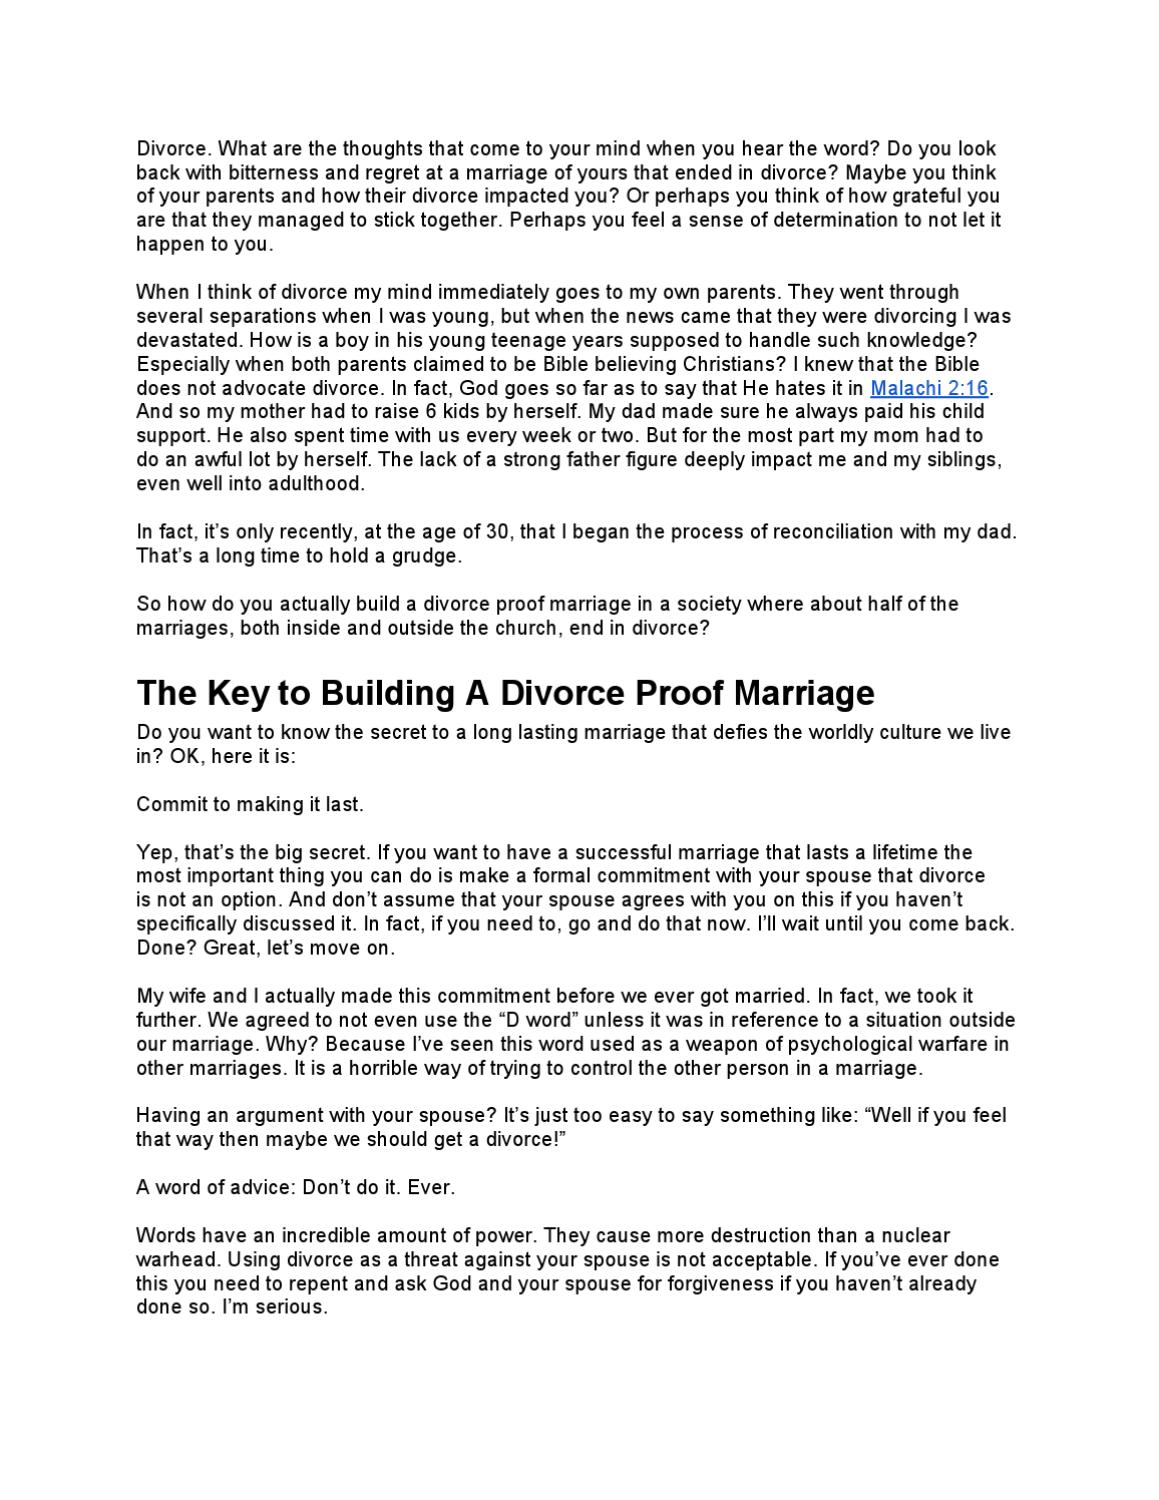 How to Build a Divorce Proof Marriage by Daniel Robertson